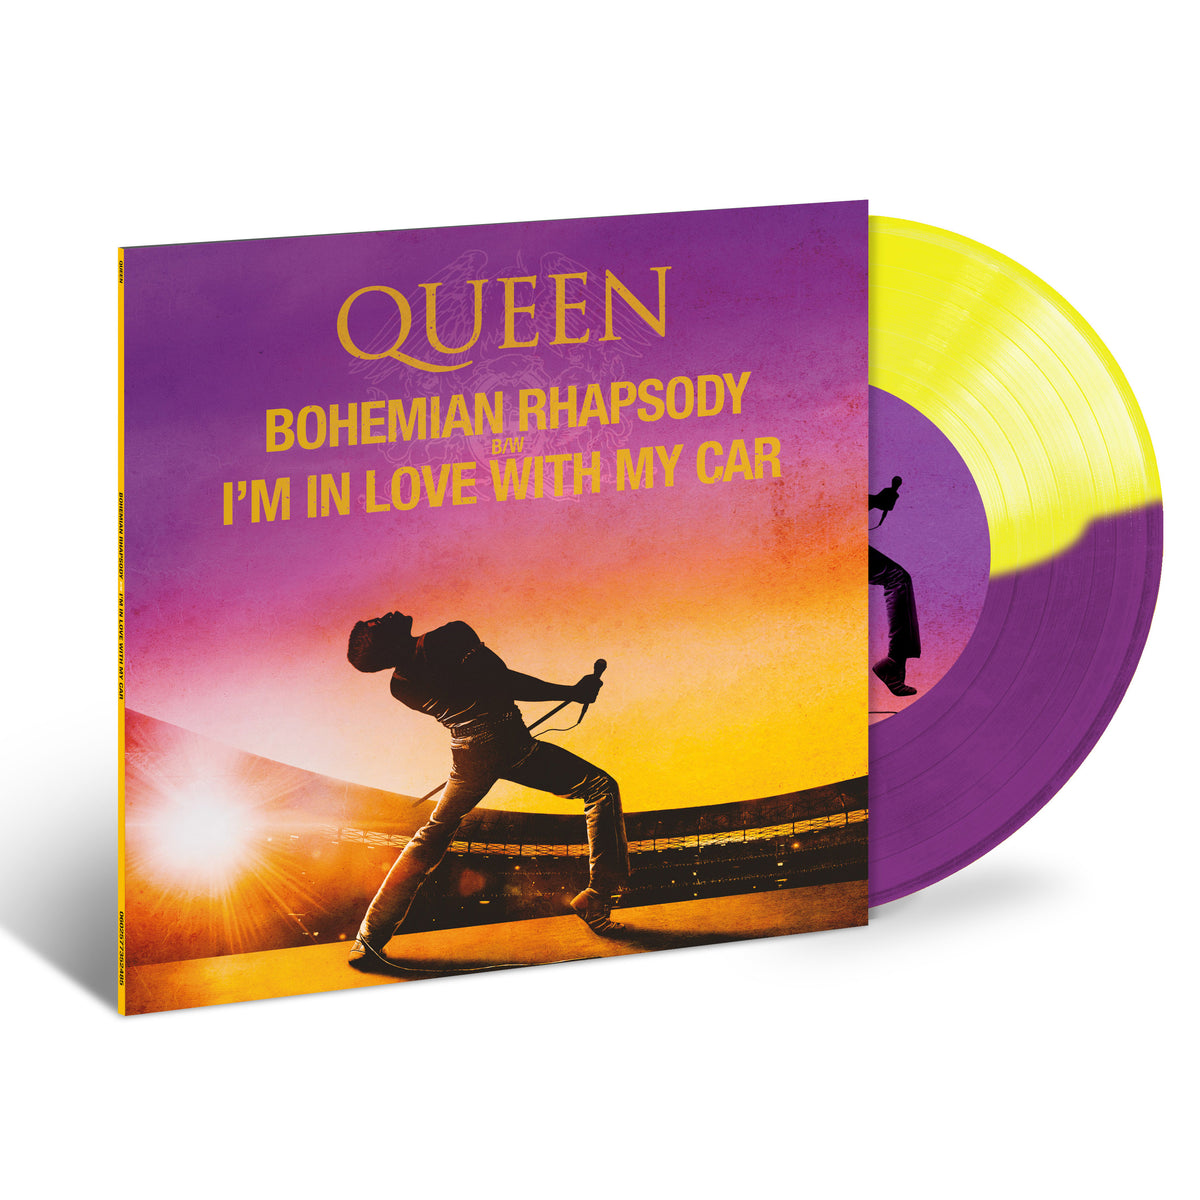 "Queen: Bohemian Rhapsody / I'm In Love With My Car (Colored Vinyl) Vinyl 7"" (Record Store Day)"